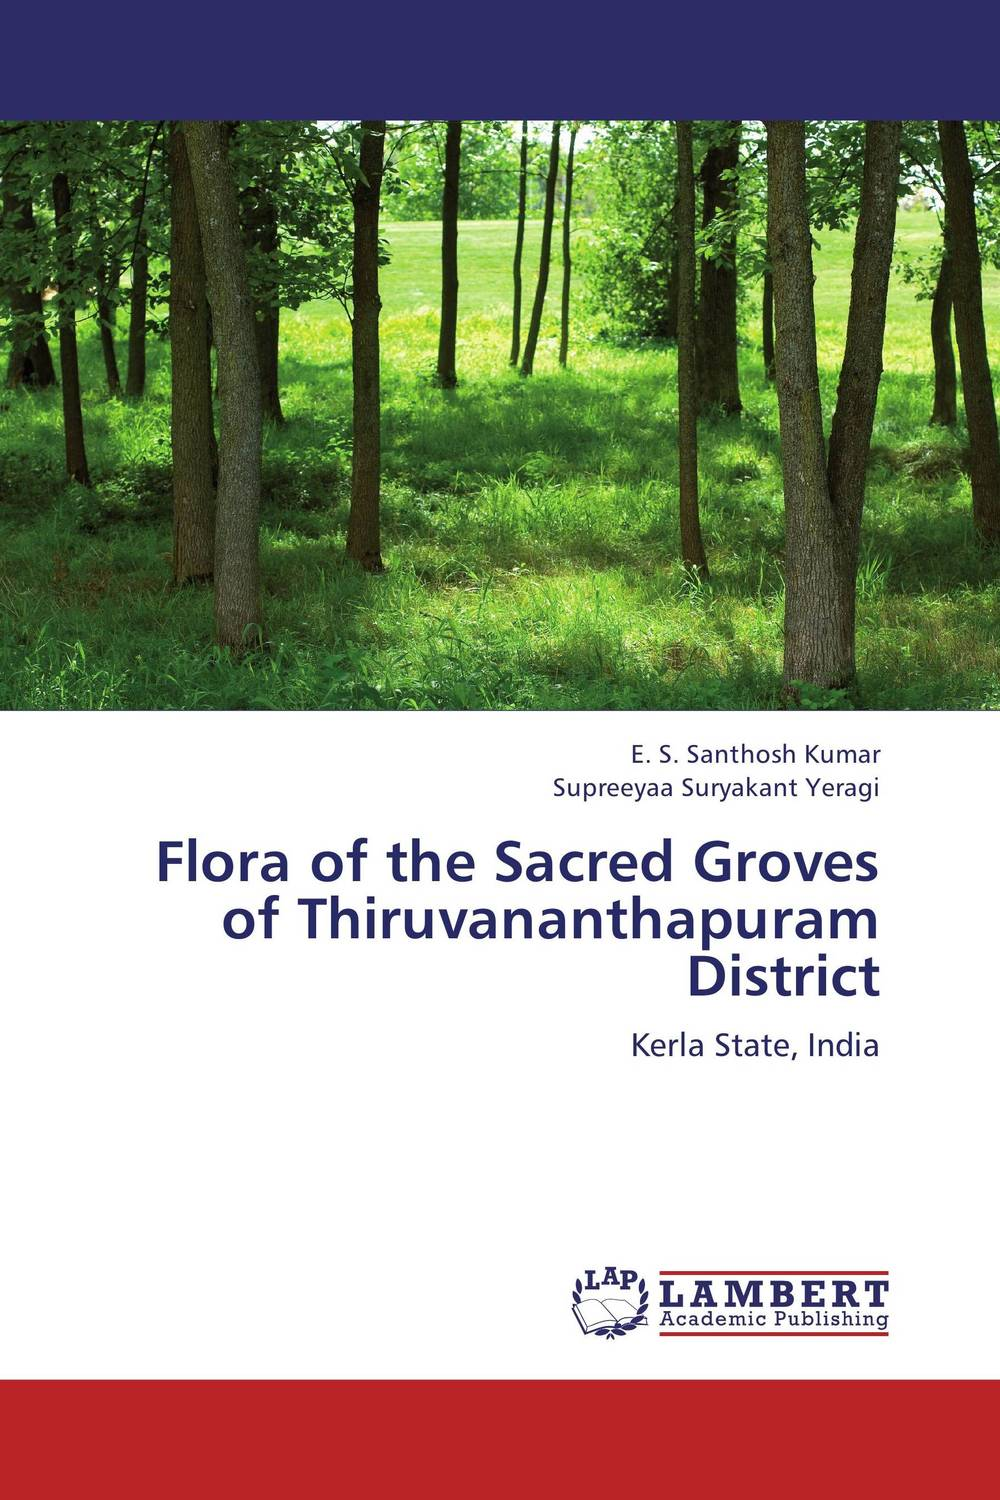 Flora of the Sacred Groves of Thiruvananthapuram District sacred groves